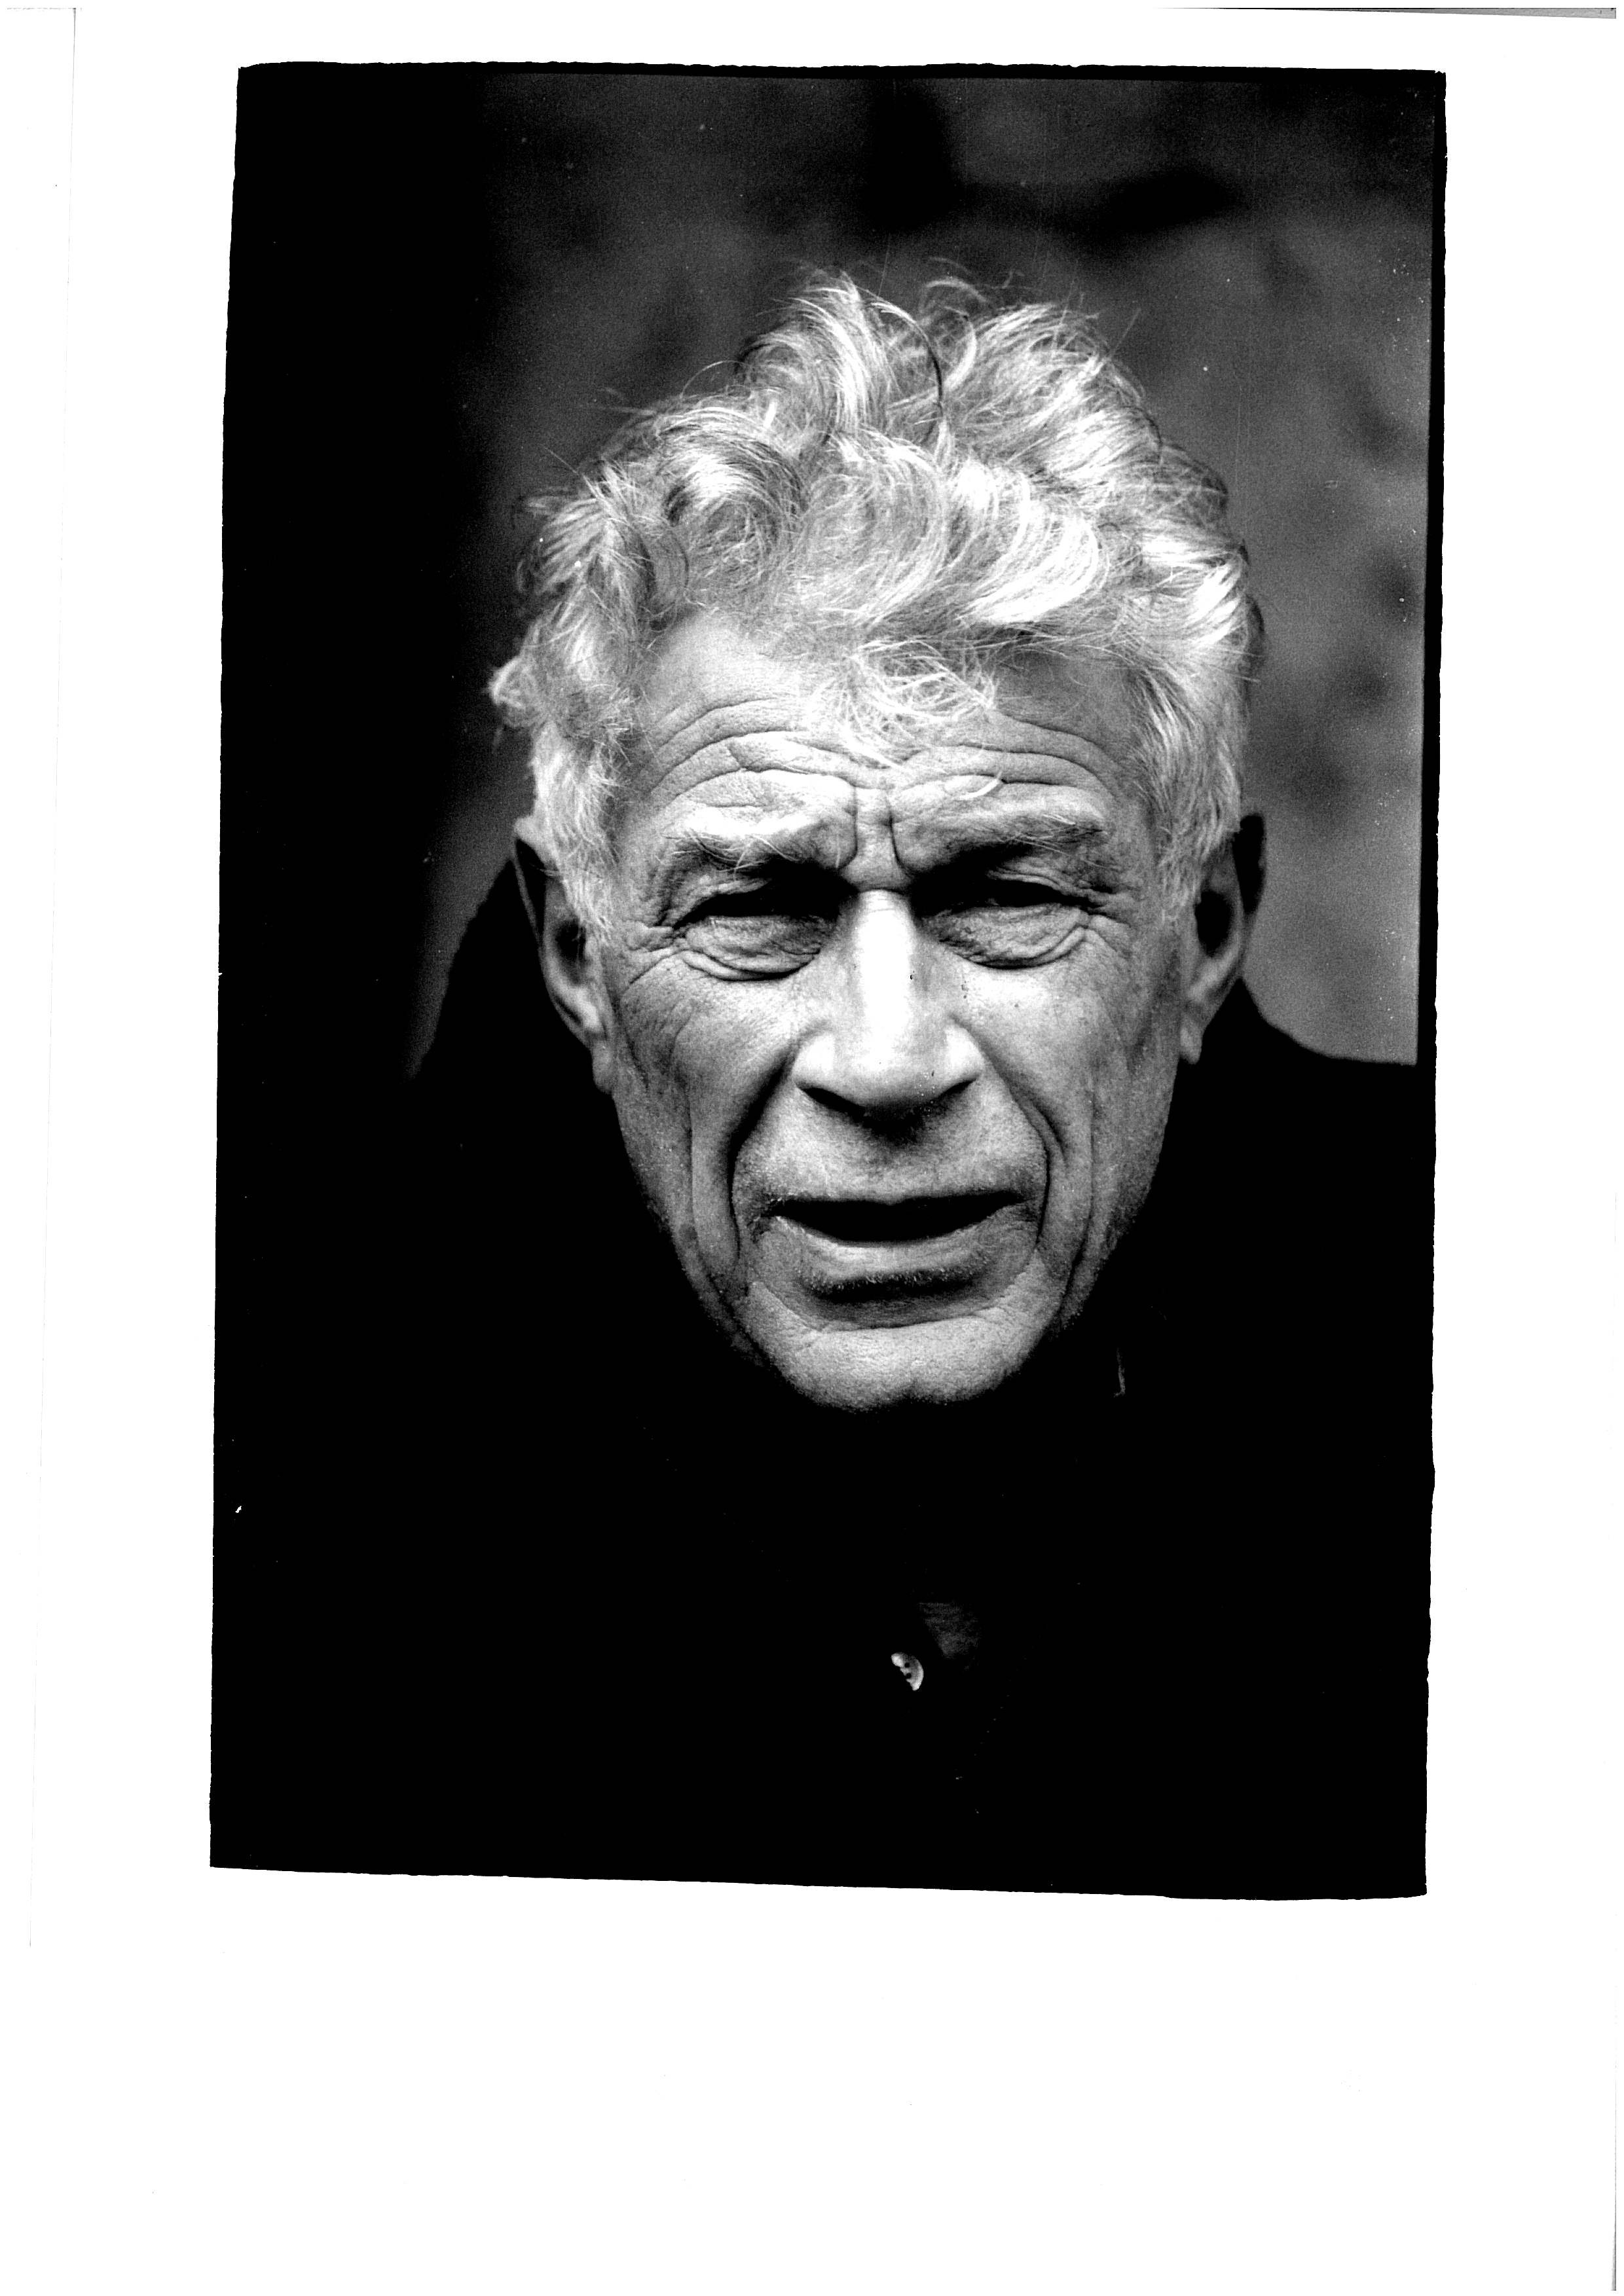 john bergers John berger's wiki: john peter berger (5 november 1926 – 2 january 2017) was an english art critic, novelist, painter and poet his novel g won the 1972 booker prize, and his essay on art criticism, ways of seeing, written as an accompaniment to a bbc series, is often used.